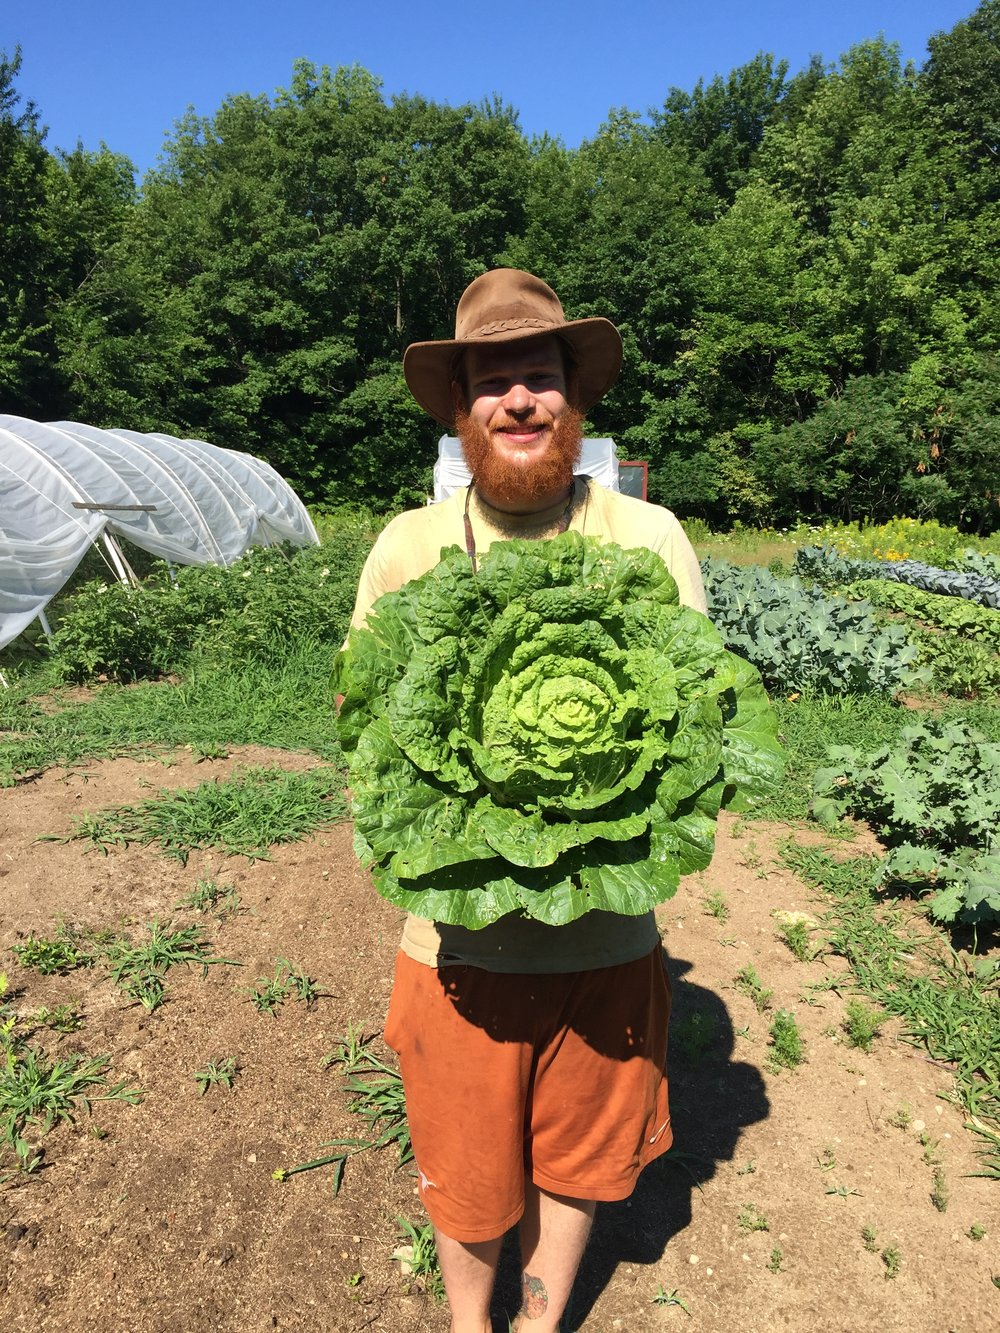 The Cabbage King